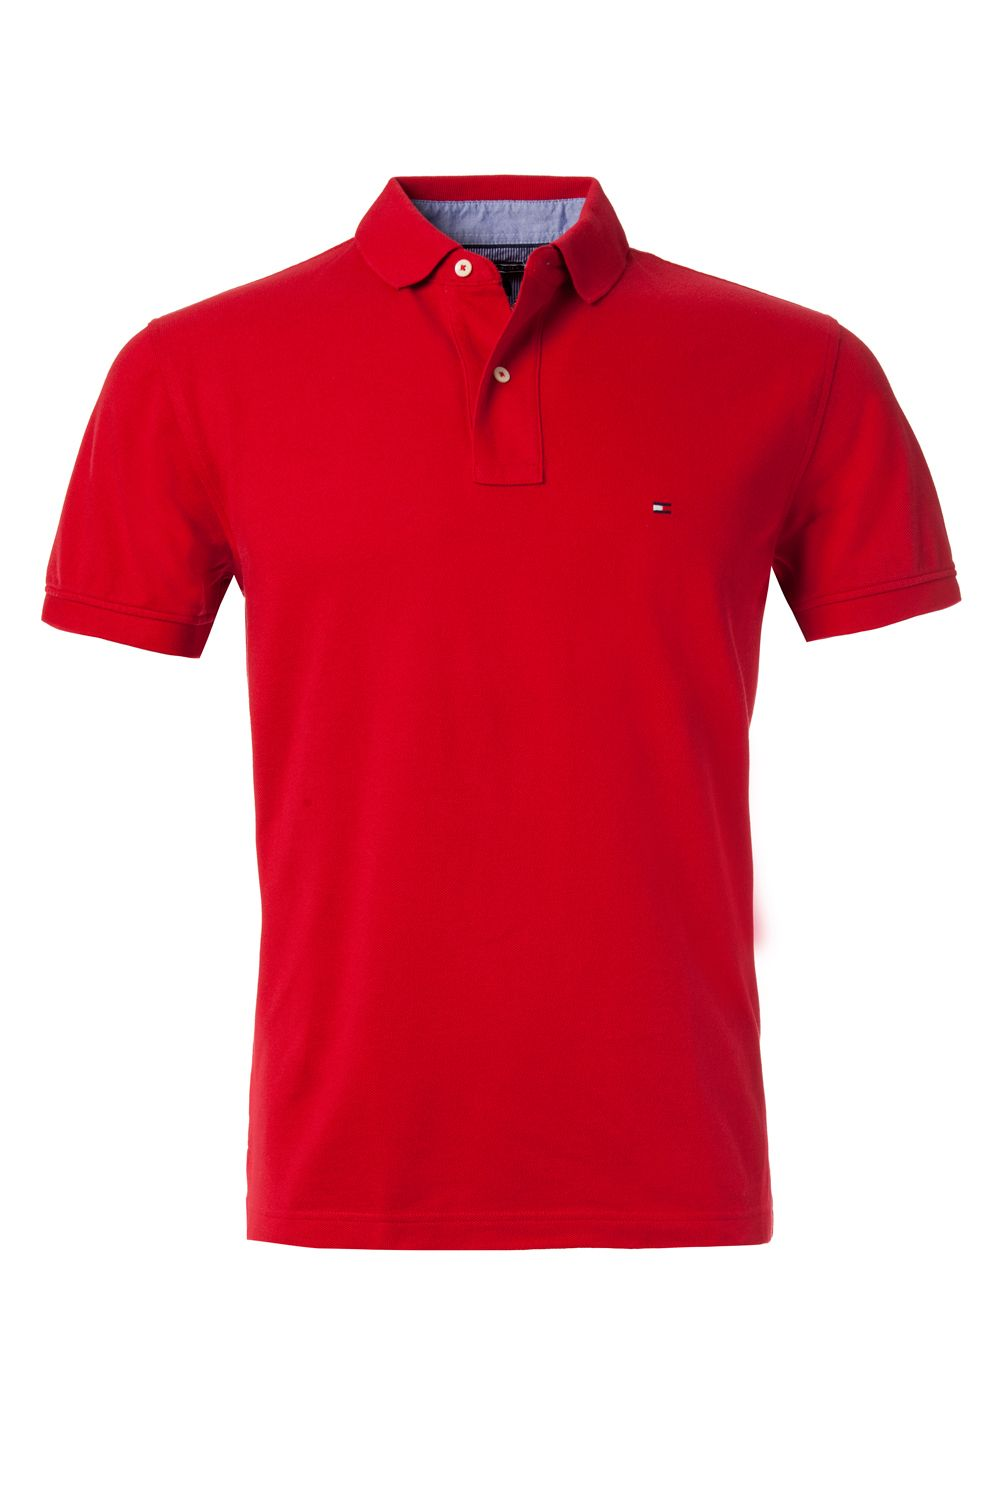 New tommy knit polo